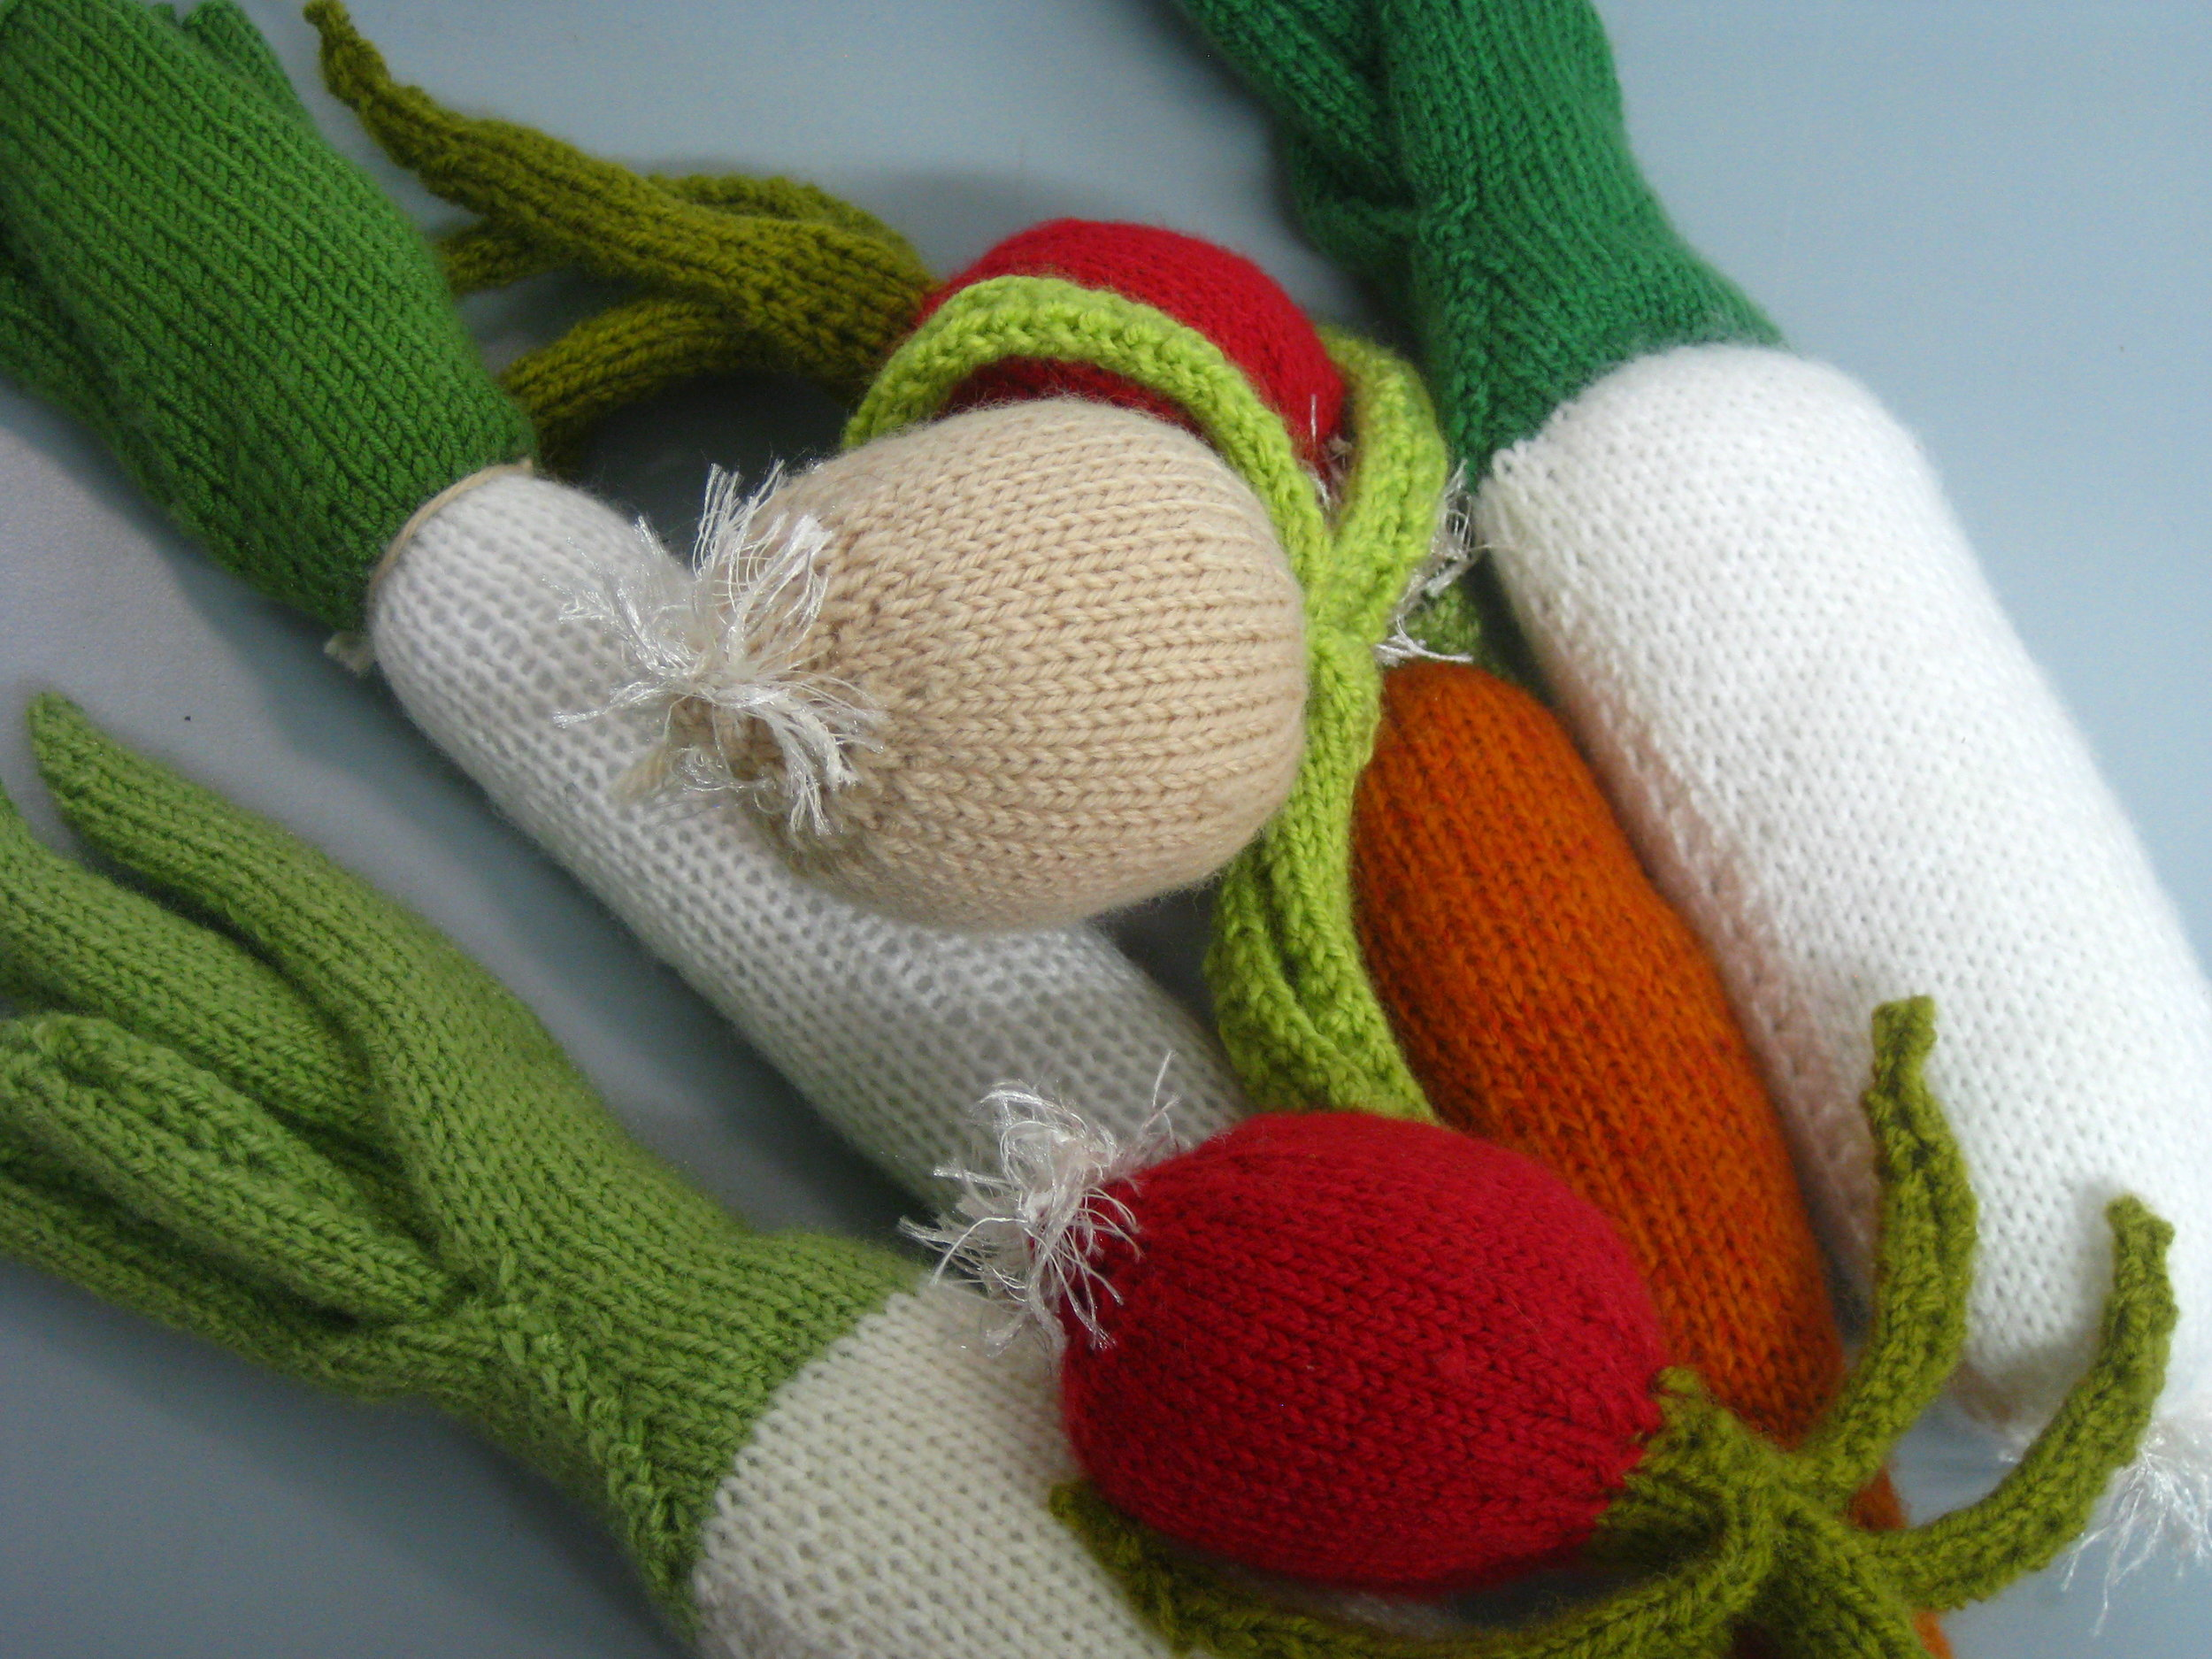 Cute knitted veggies to demonstrate what SASA are looking for when they do the DUS tests